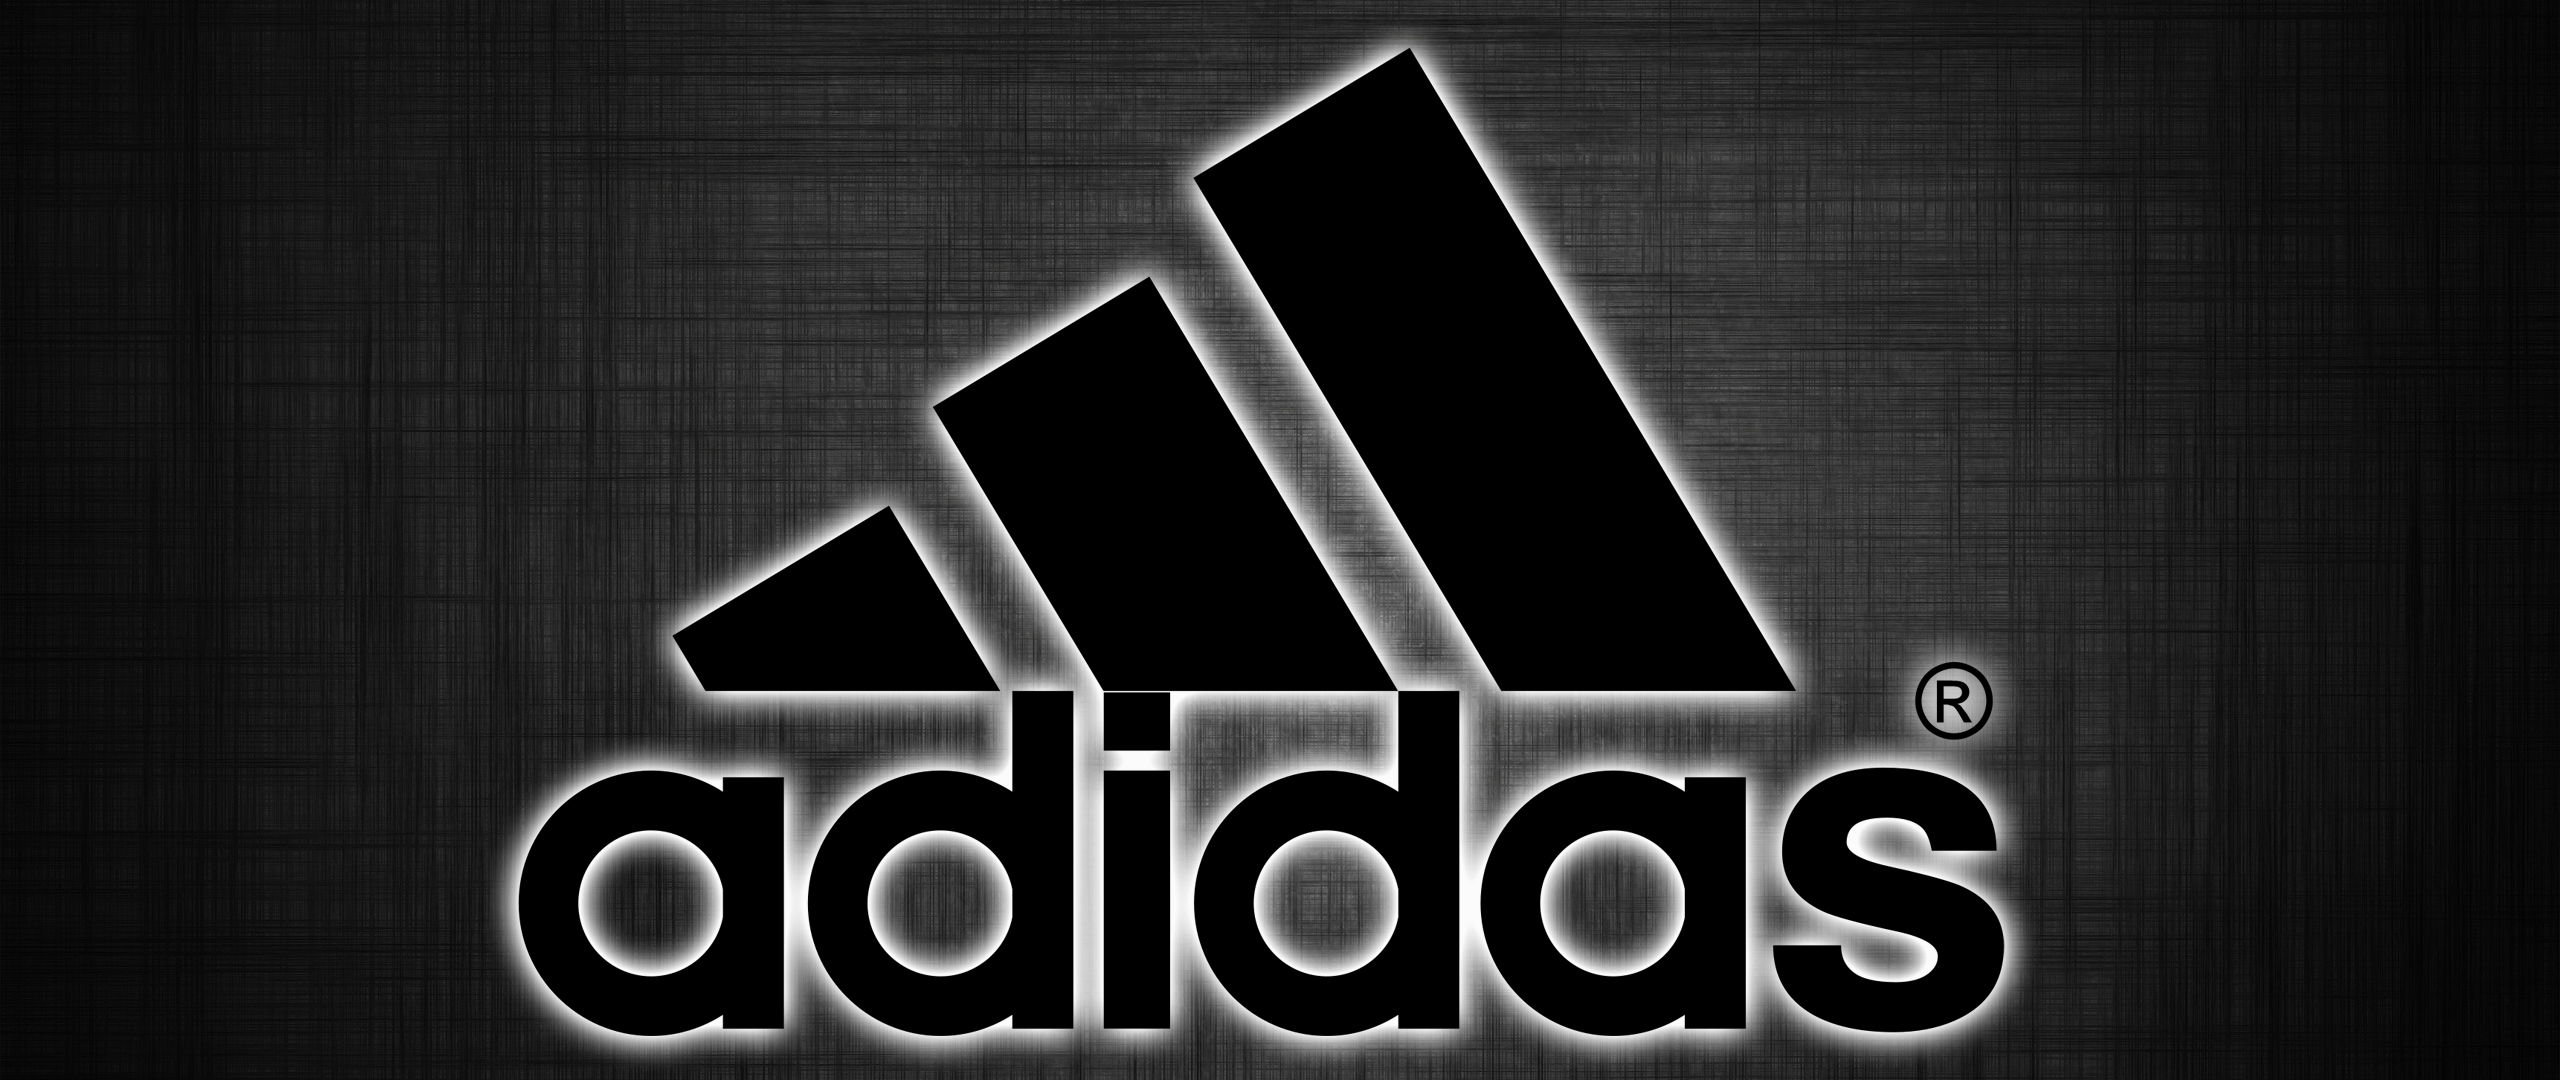 Famous brand logos: the meaning you wouldn't even think of